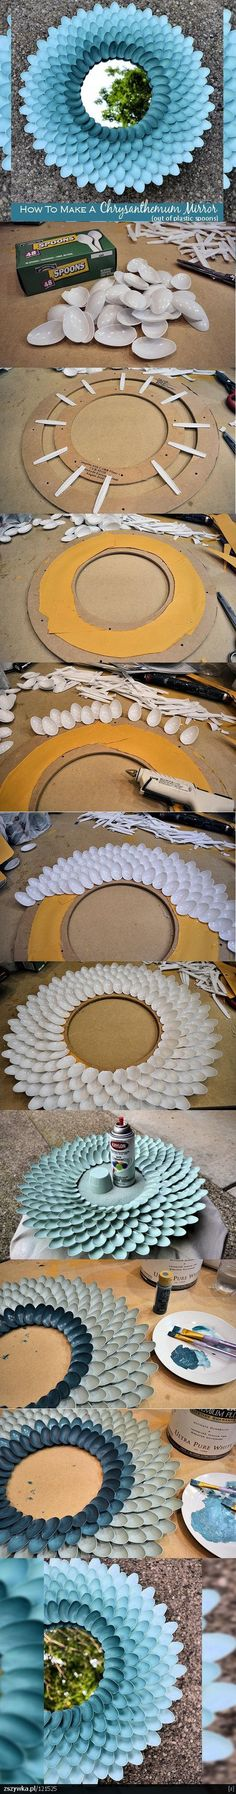 make a crysanthemum mirror from plastic spoons.  gorgeous.